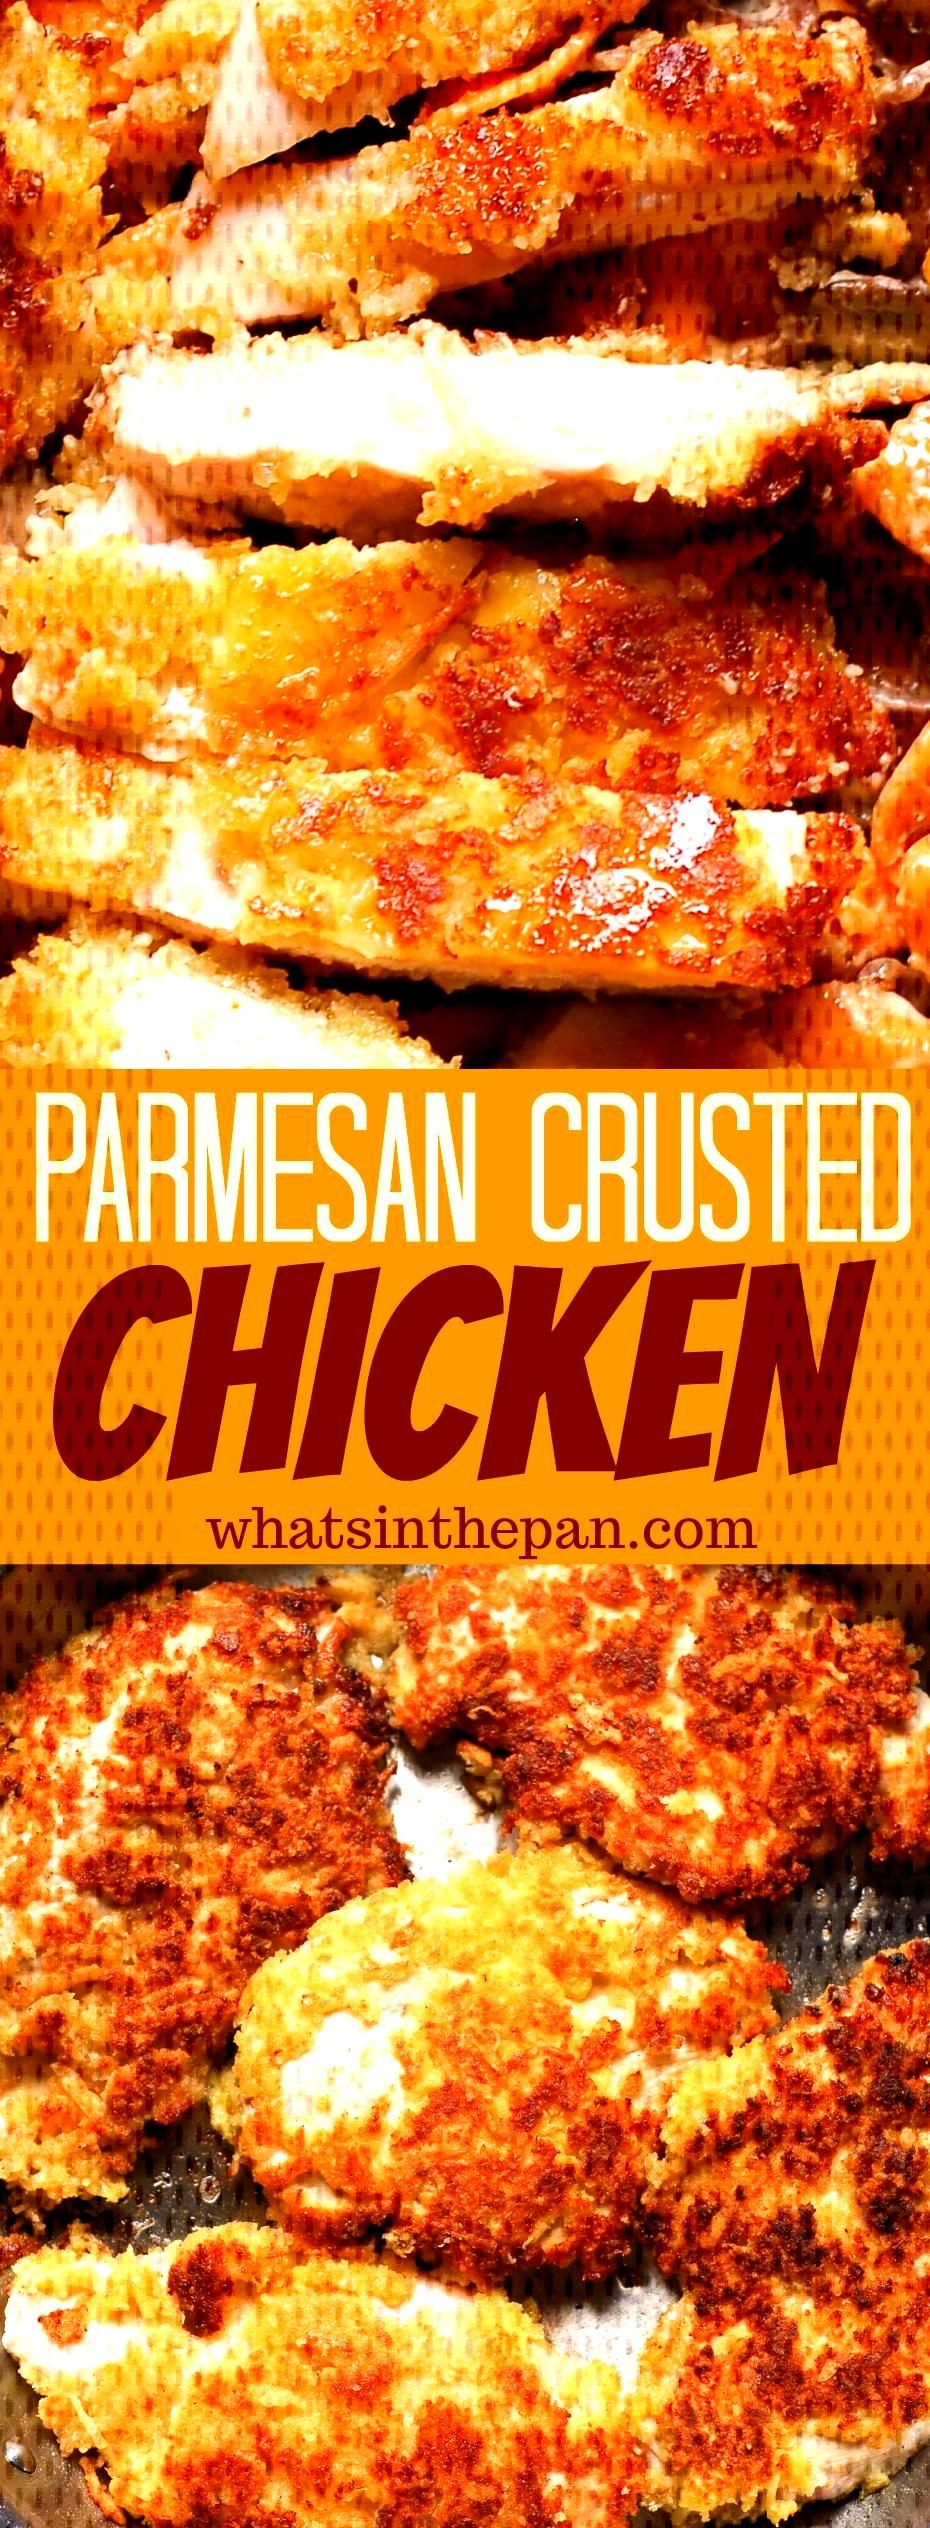 Parmesan Crusted Chicken Parmesan Crusted Chicken is quick and easy recipe to add to your chicken d